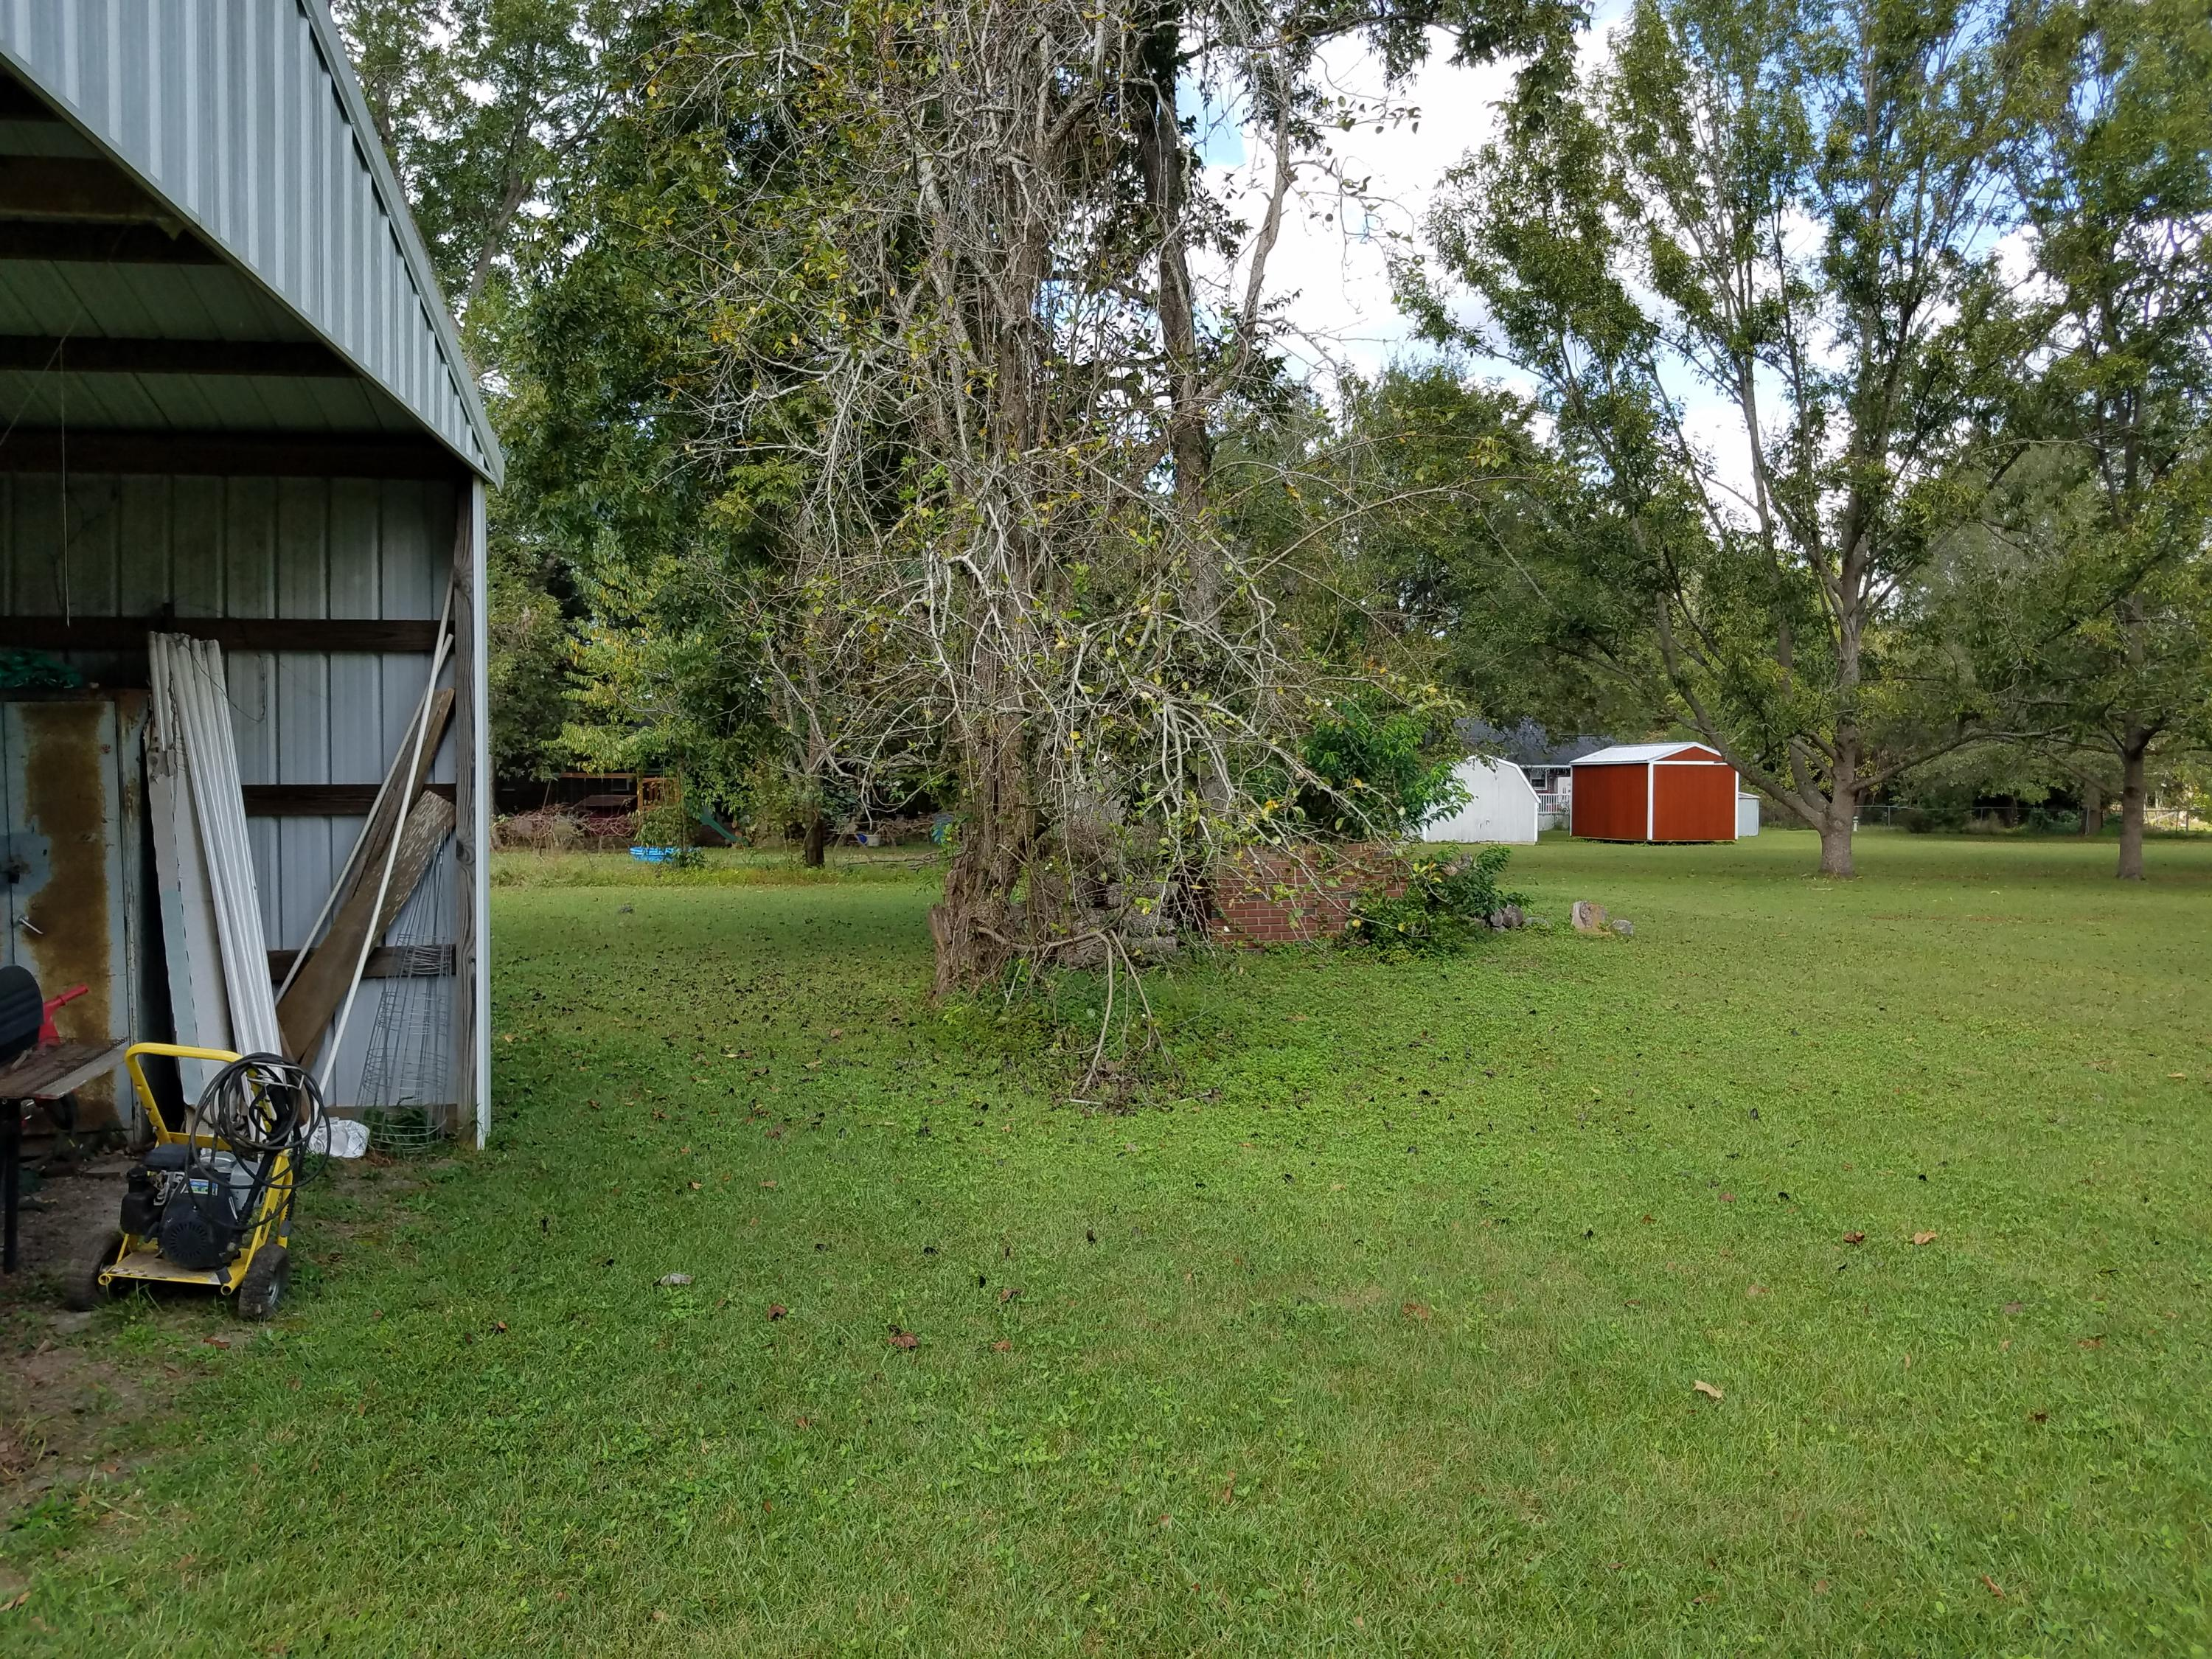 Photo of 113 Hutto Rd, Harleyville, SC 29448